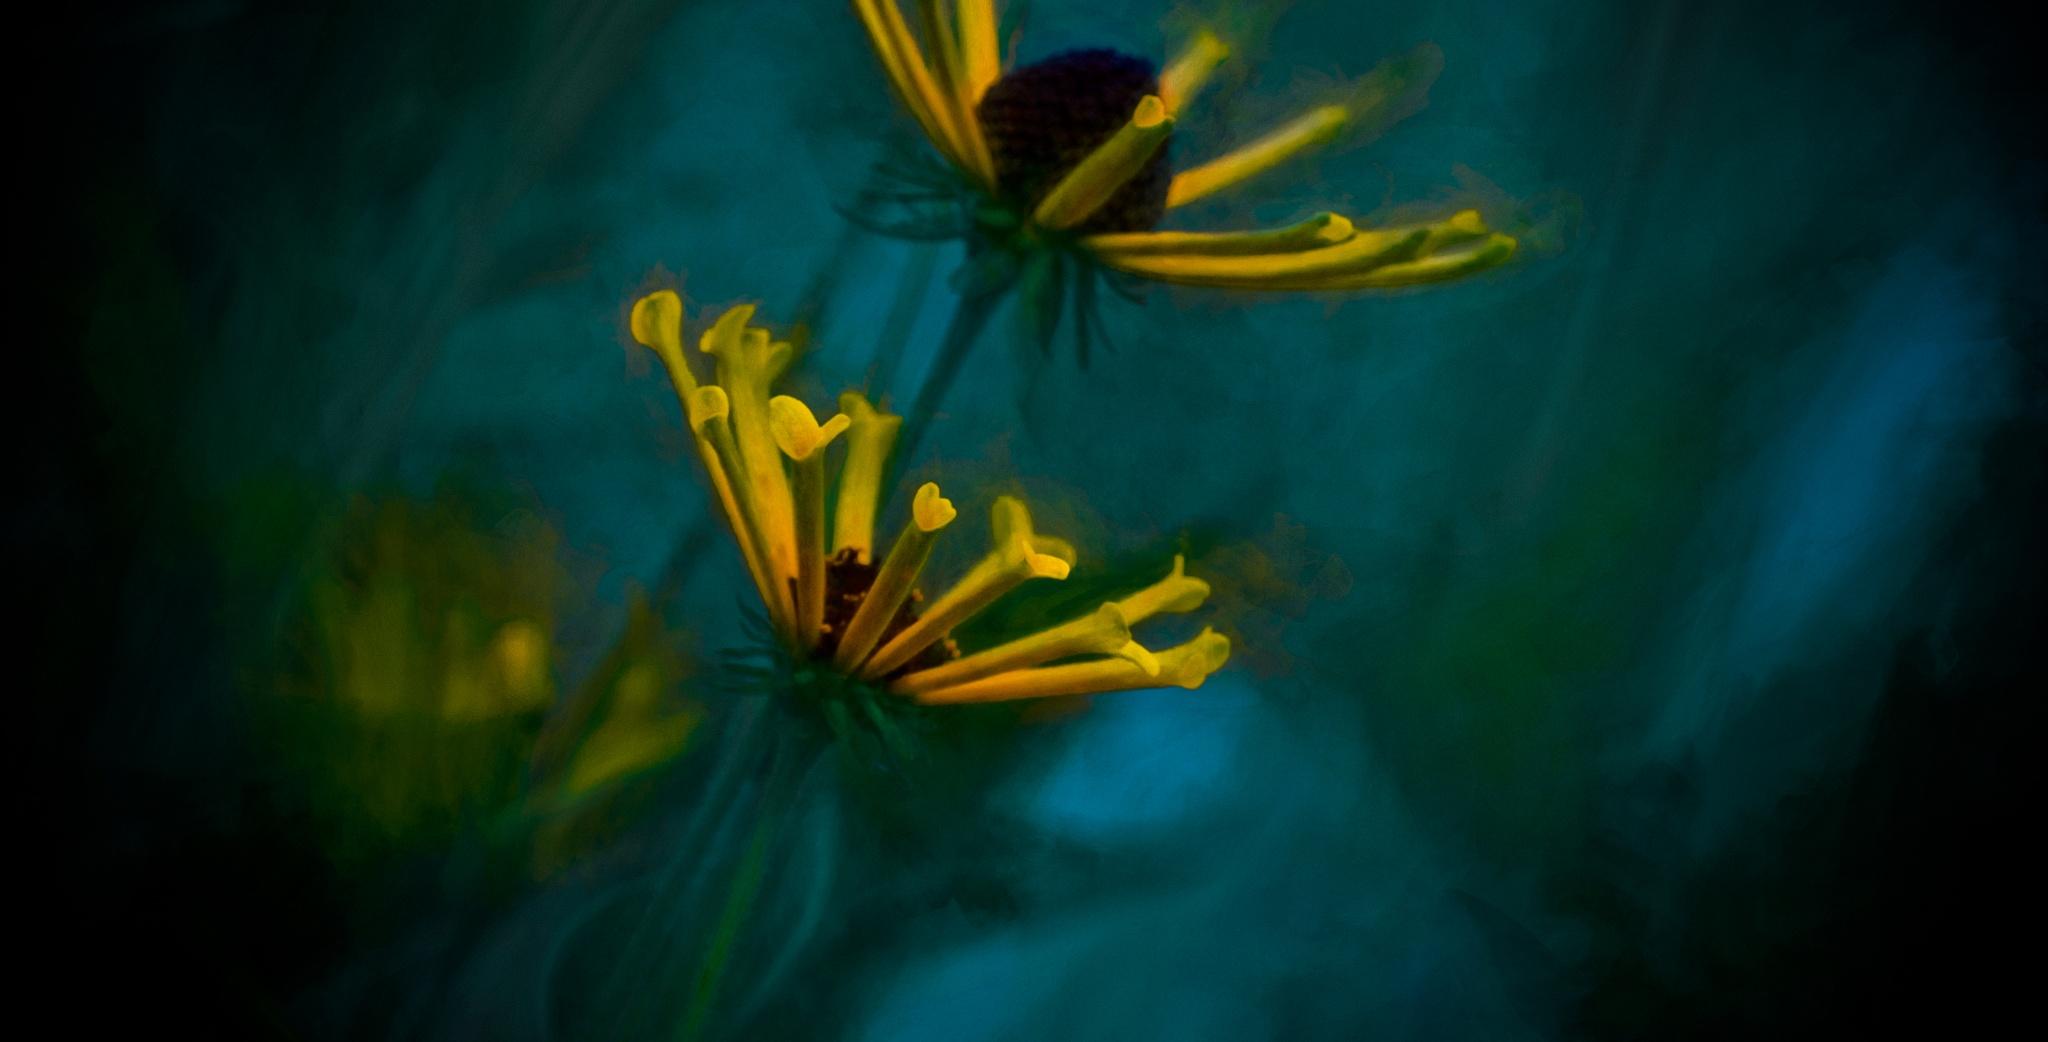 Coneflower Fantasy XIX by JohnEllingson